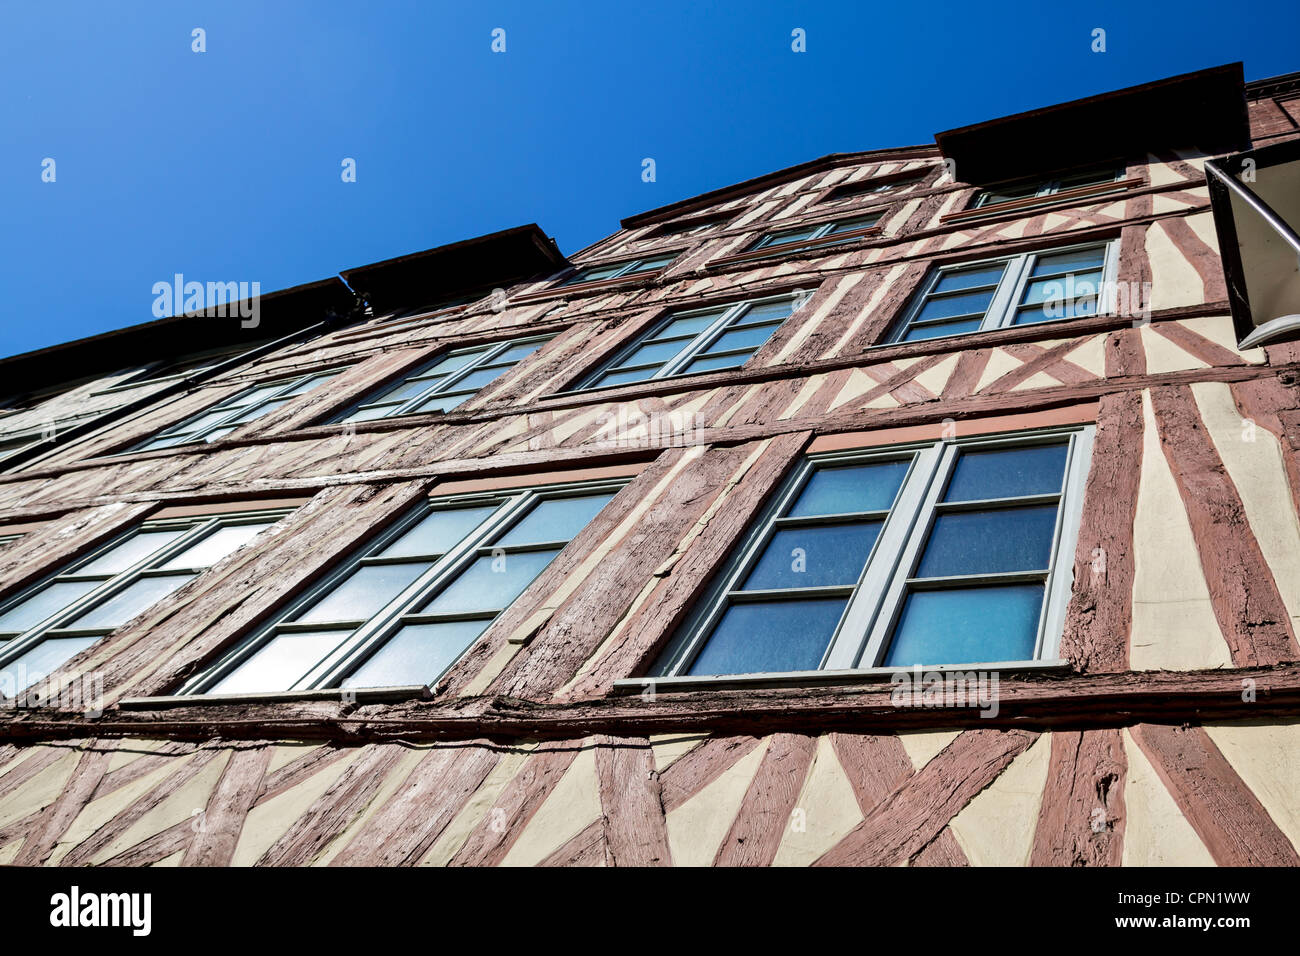 Half-timbered house in Rouen, France - Stock Image